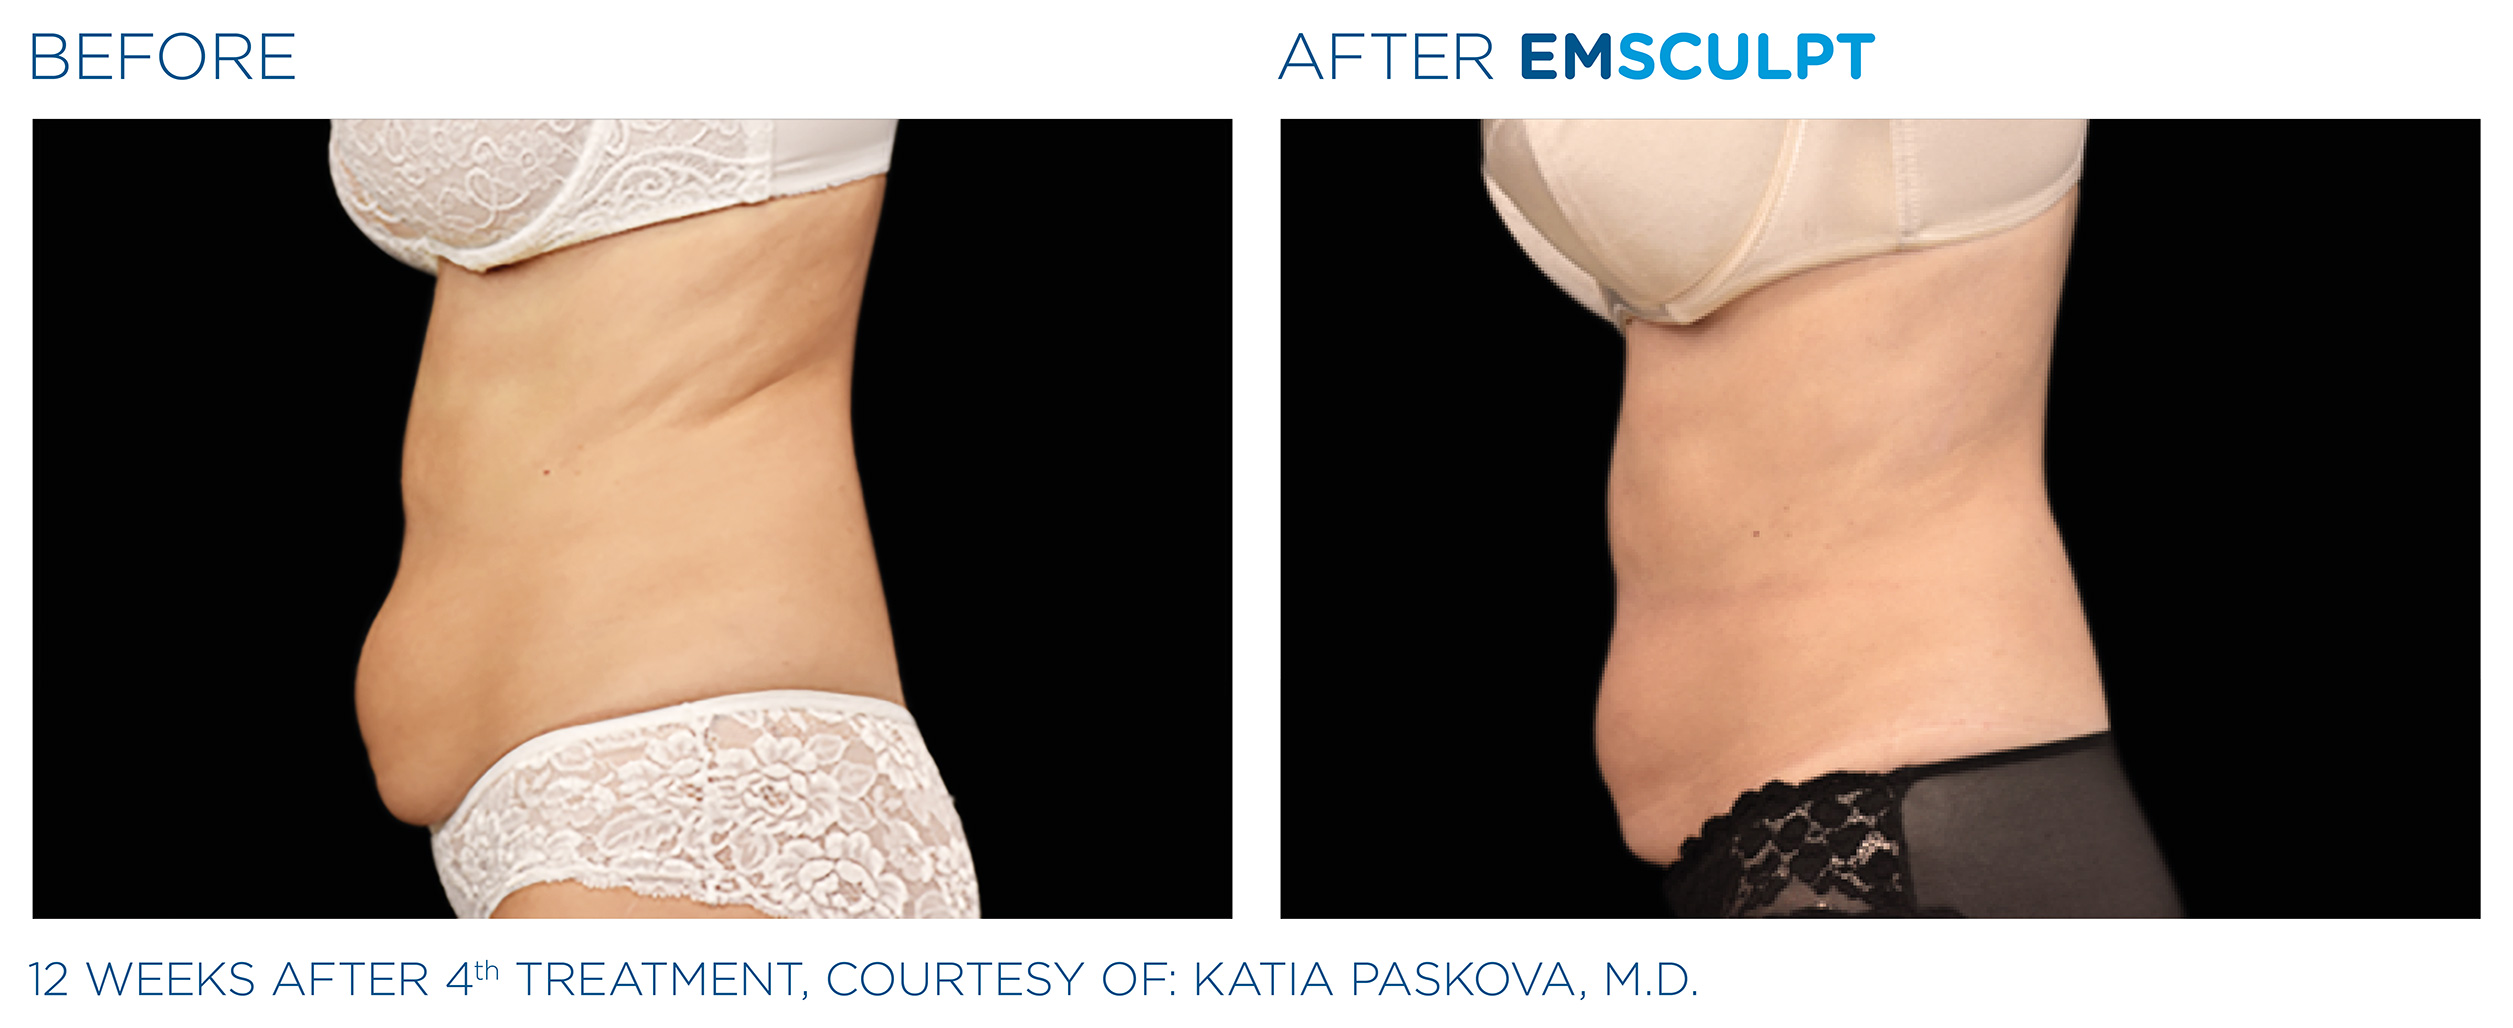 EMSCULPT Before & After Photos | Abdomen 12